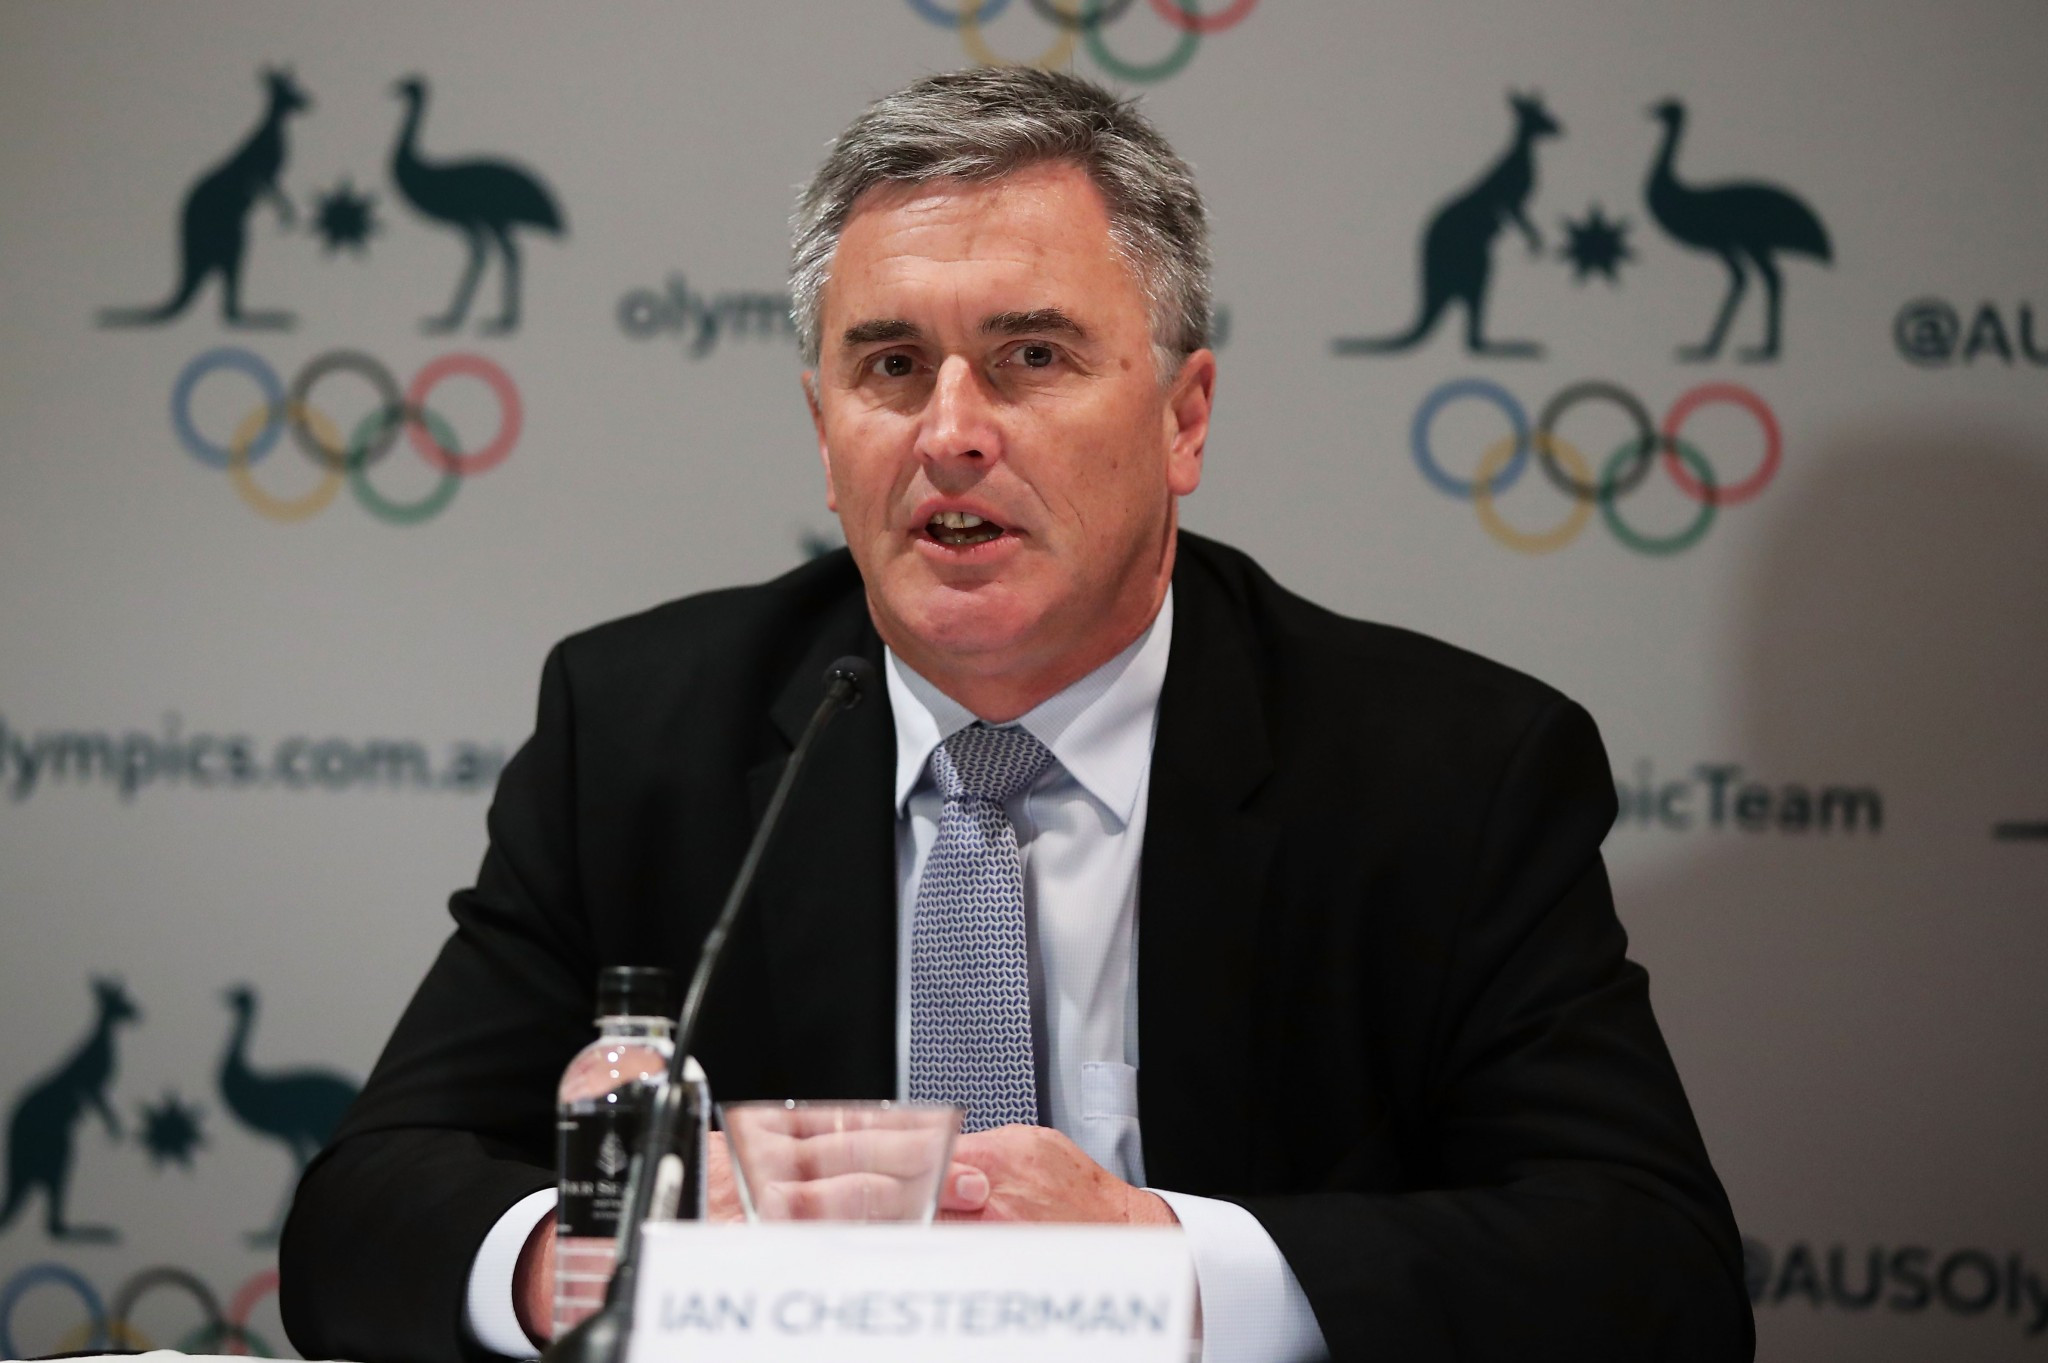 Chesterman appointed Australian Chef de Mission for Tokyo 2020